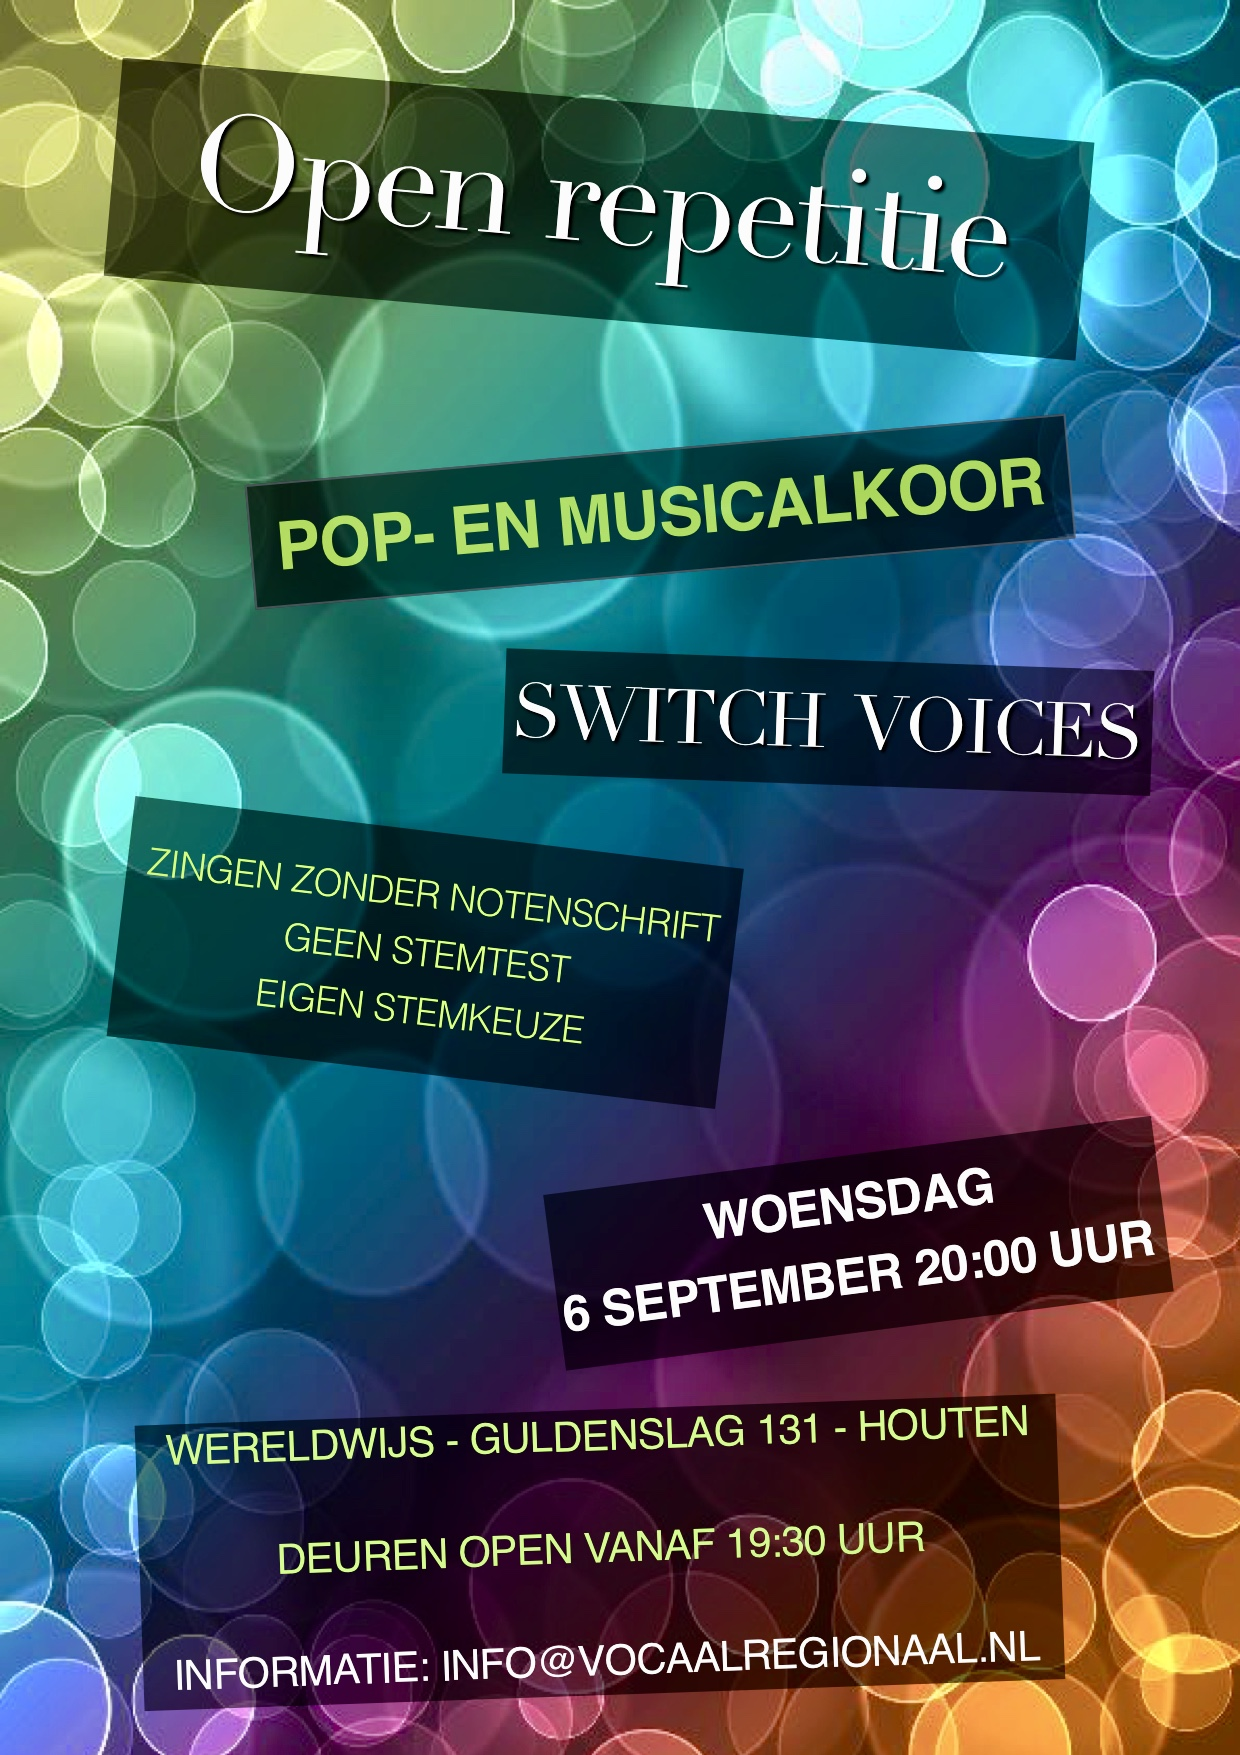 6 september open repetitie